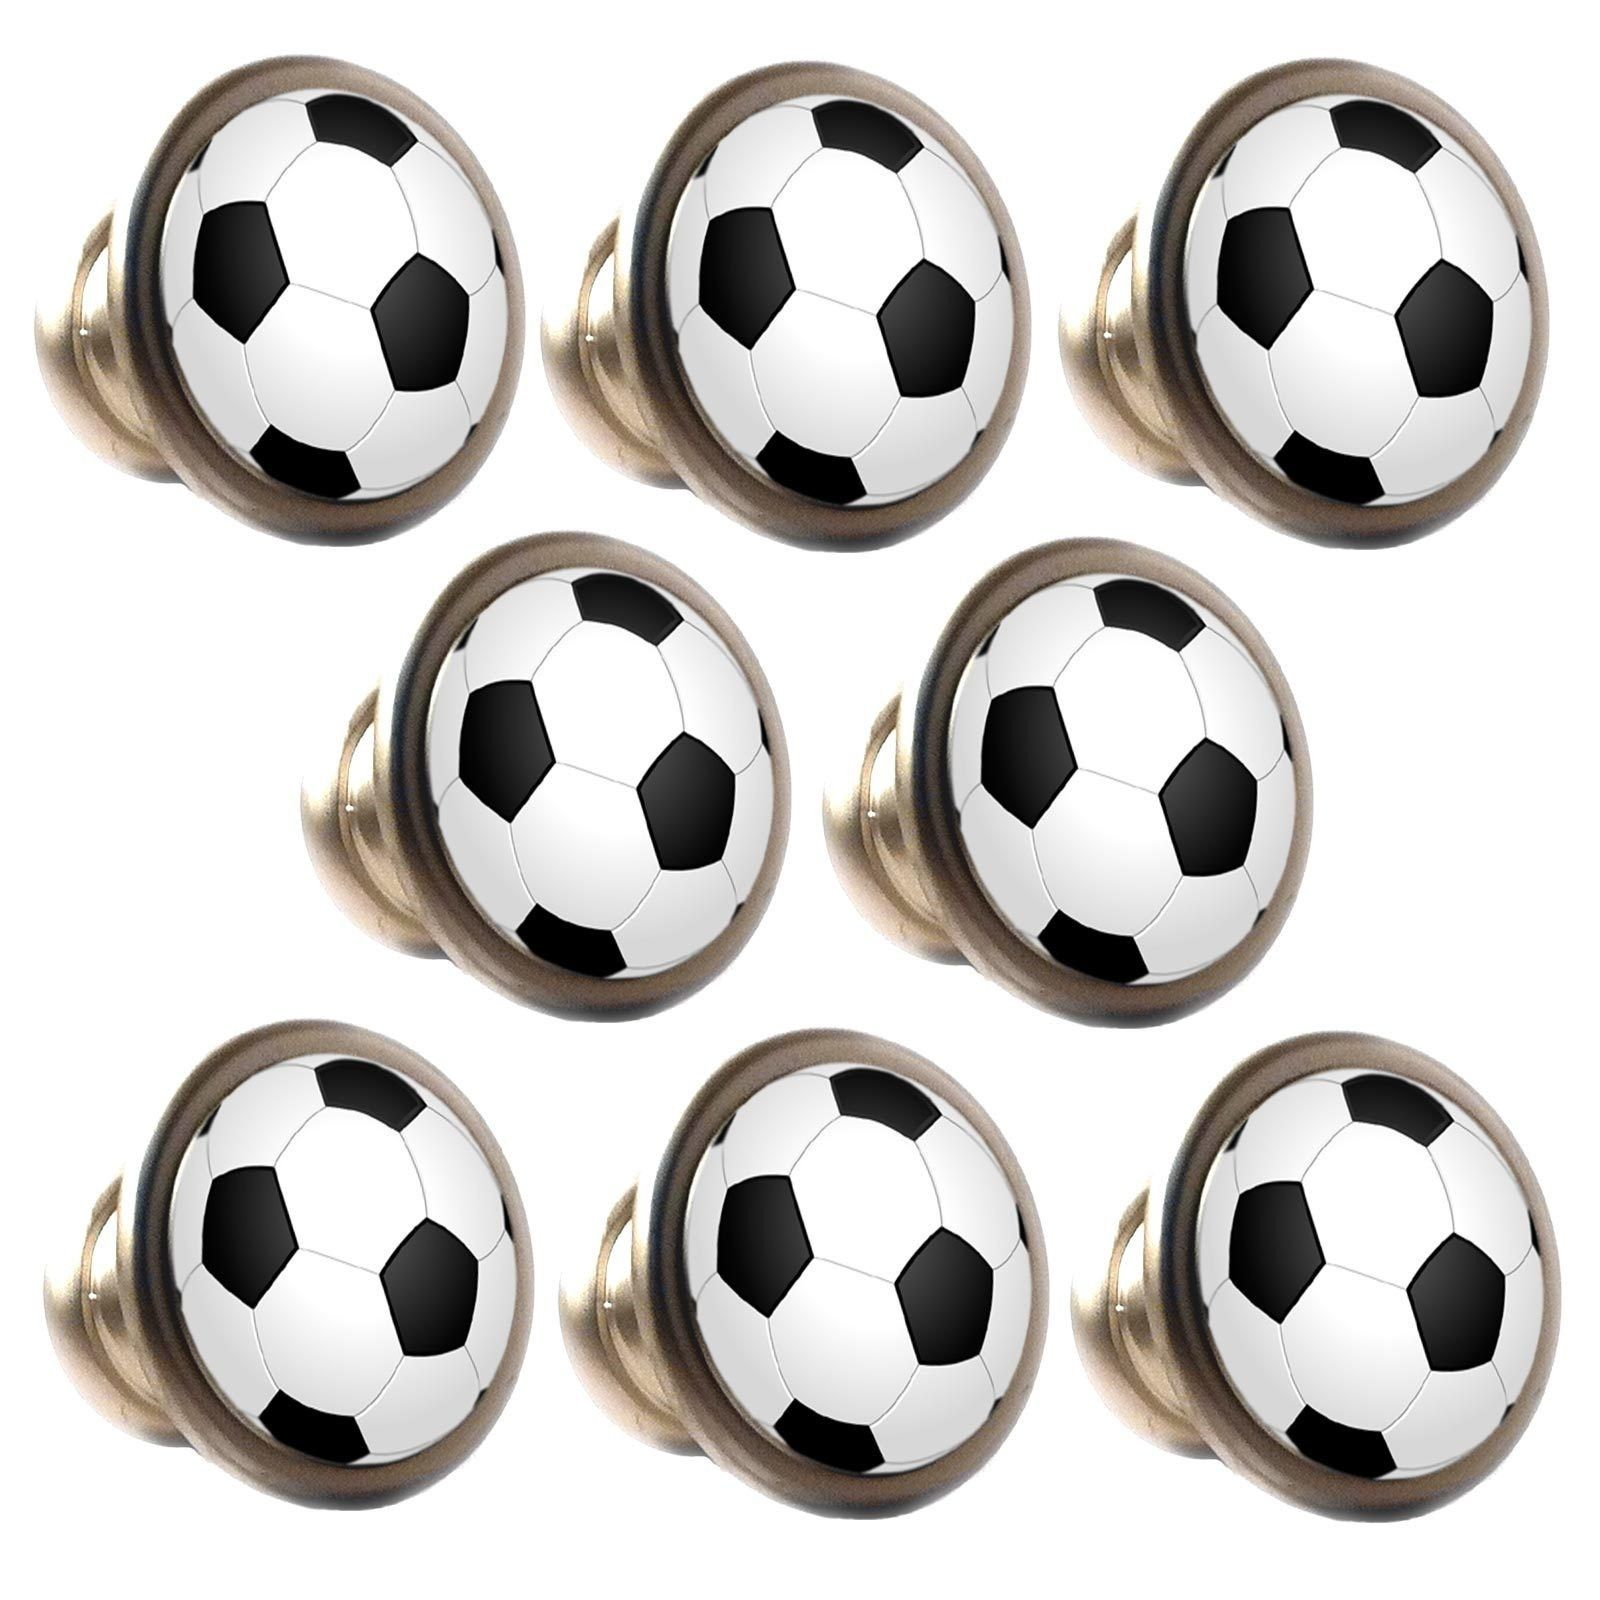 Zinc Alloy Knobs Football 30mm Cupboard Drawer Door Handles Decorated